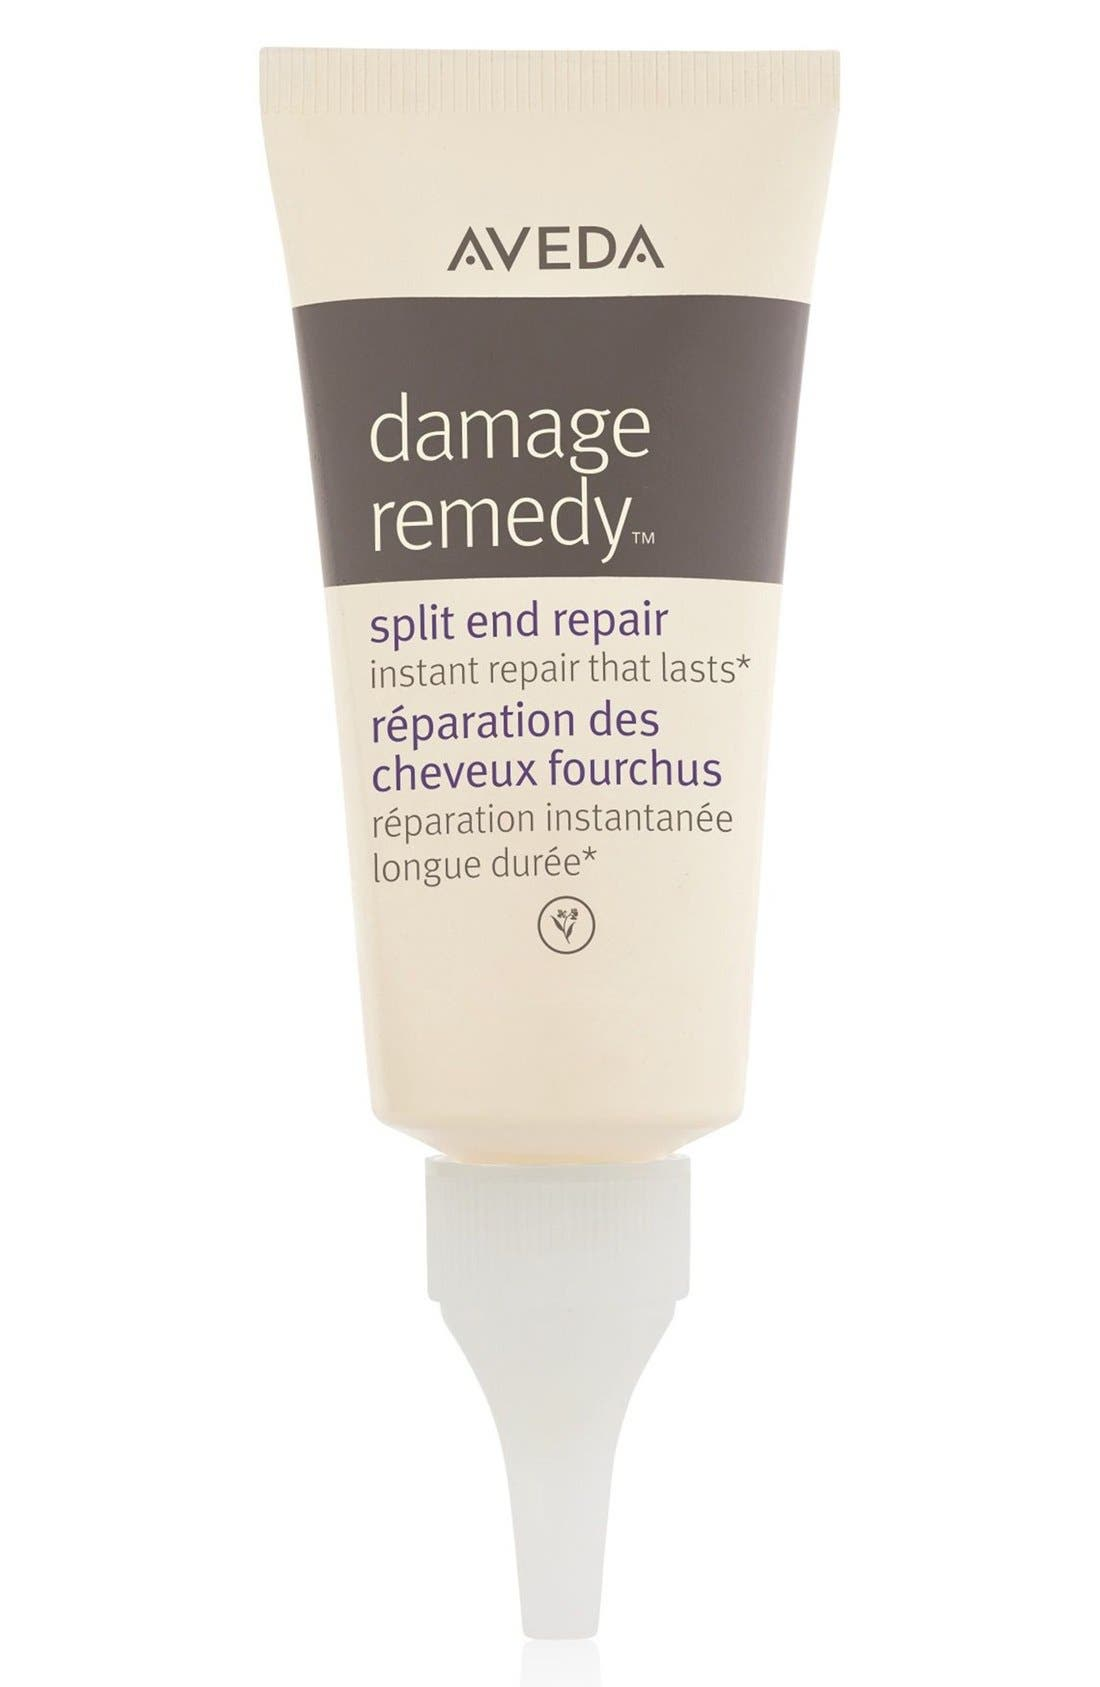 Aveda damage remedy™ Split End Repair